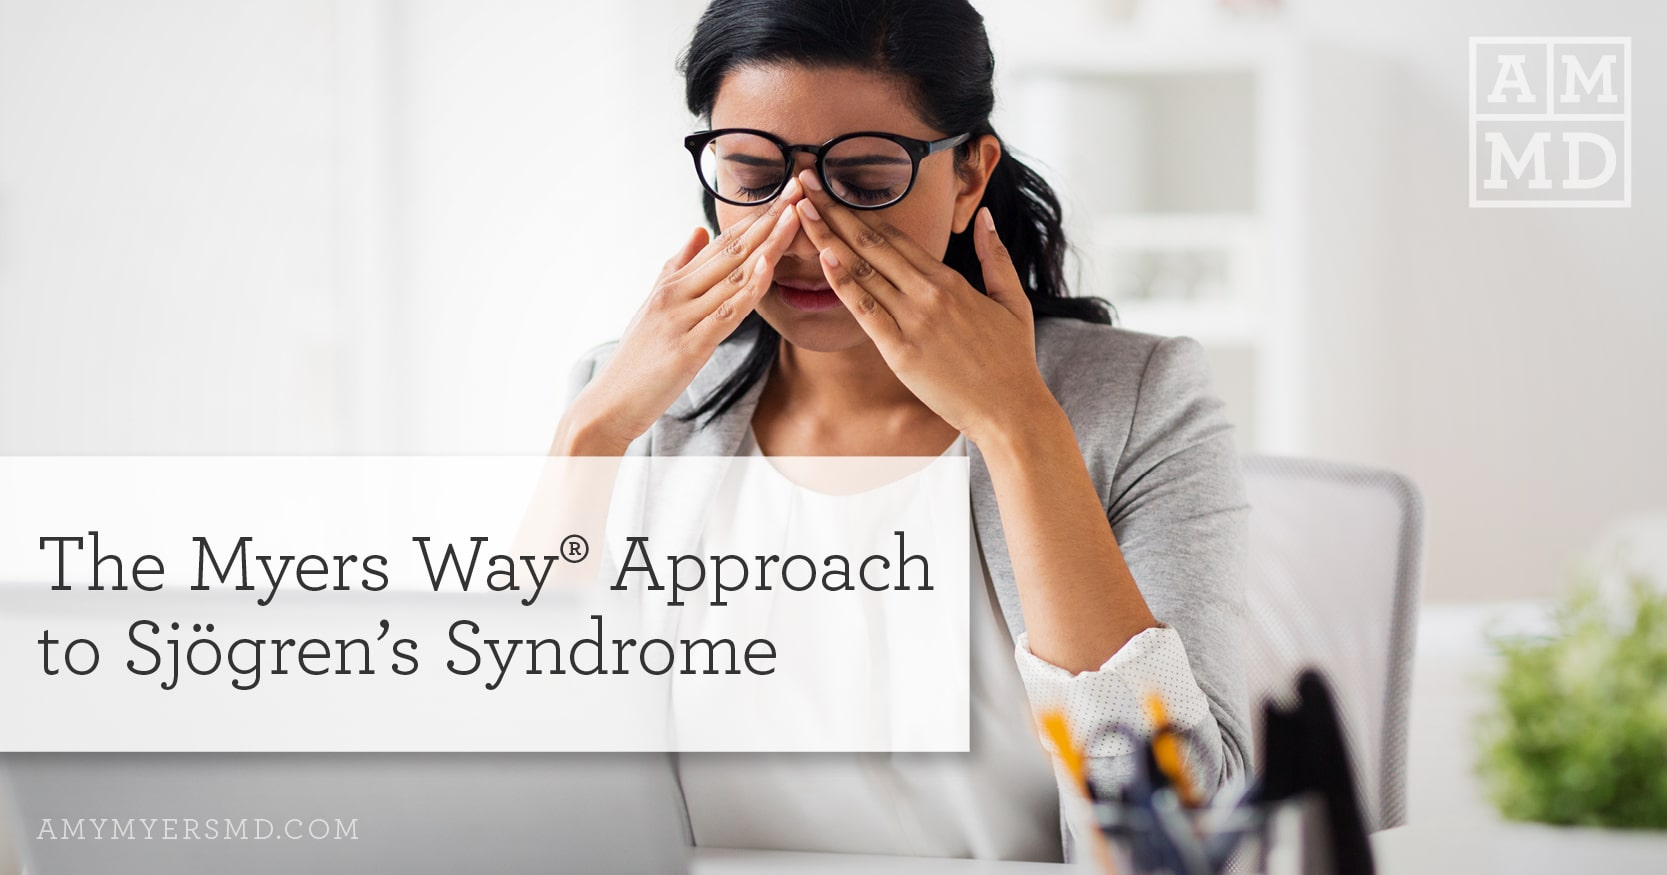 The Myers Way Approach to Sjögren's Syndrome - A Woman with Sinus Pain - Amy Myers MD